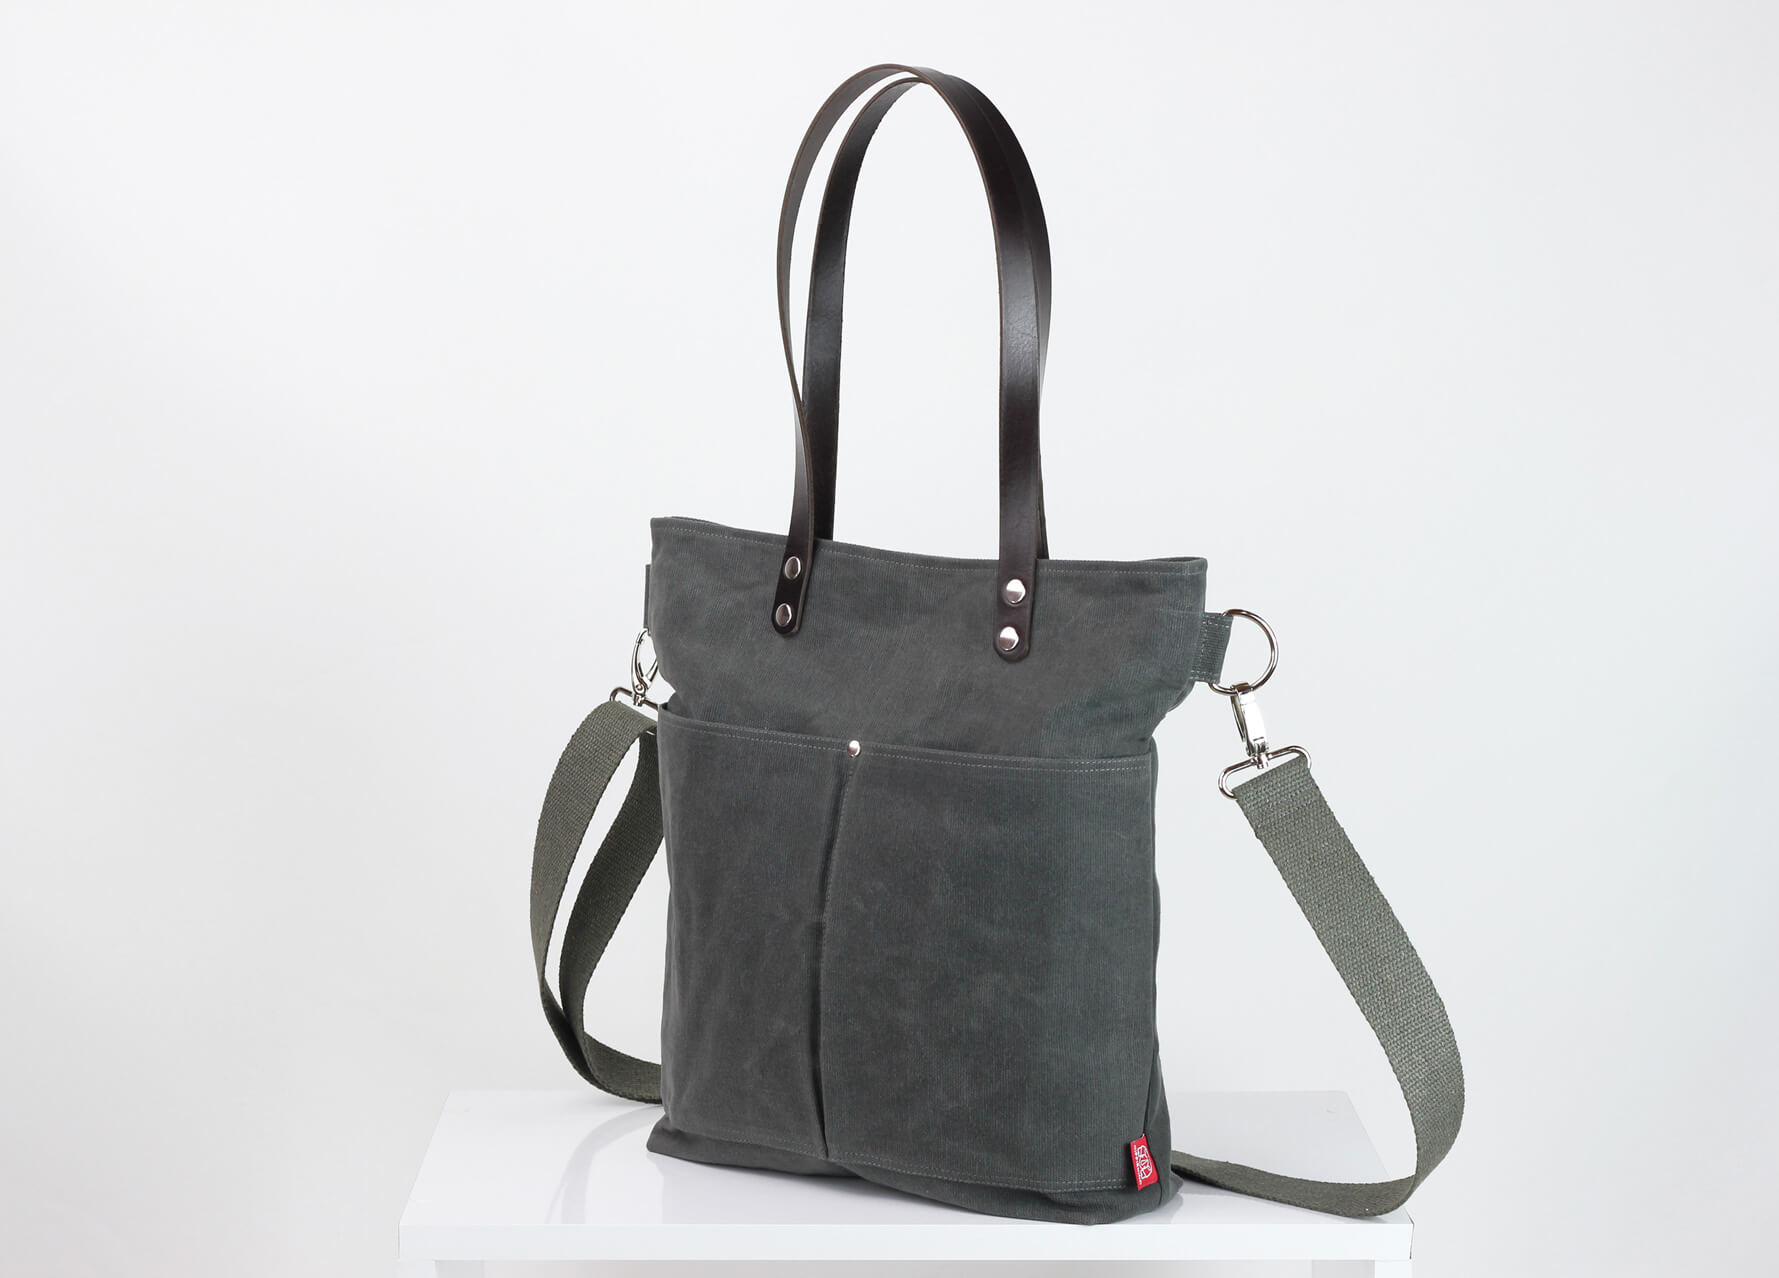 2bfcbbf62 Waxed tote bag with long leather strap, extra thick leather, gray ...